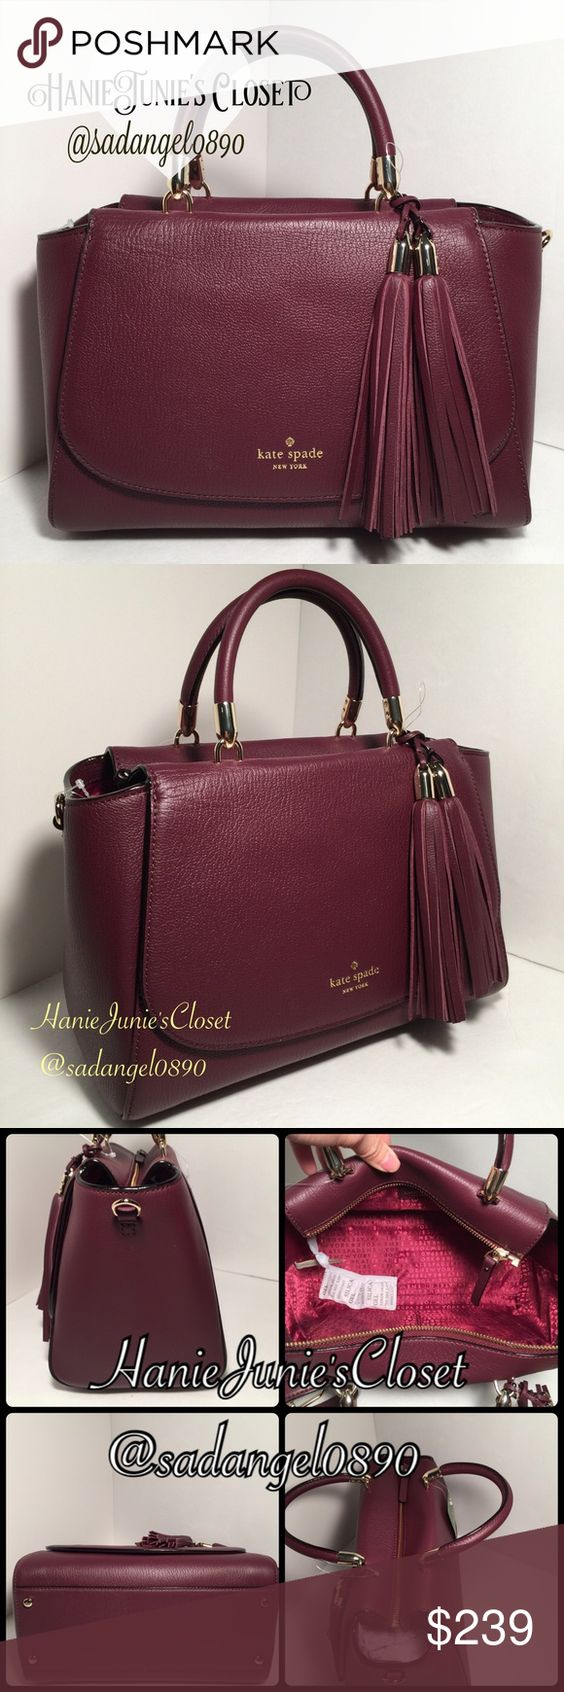 "KATE SPADE PLUM LONGACRE COURT SATCHEL Material: Leather Color: MulledWine  measurements: H 7 1/2, L 12"", D 6"" Gold tone hardware Top Zip closure and Flap with magnetic snap closure Short double 3 1/2 inches drop. Removable long strap 16"" Hanging double leather tassels. Front flap has a covered slip pocket Lower front flap has the Kate Spade logo printed on gold tone color. Inside is finished with Kate Spade signature lining, a zip pocket and 2 slip pockets. There are 4 protective feet…"